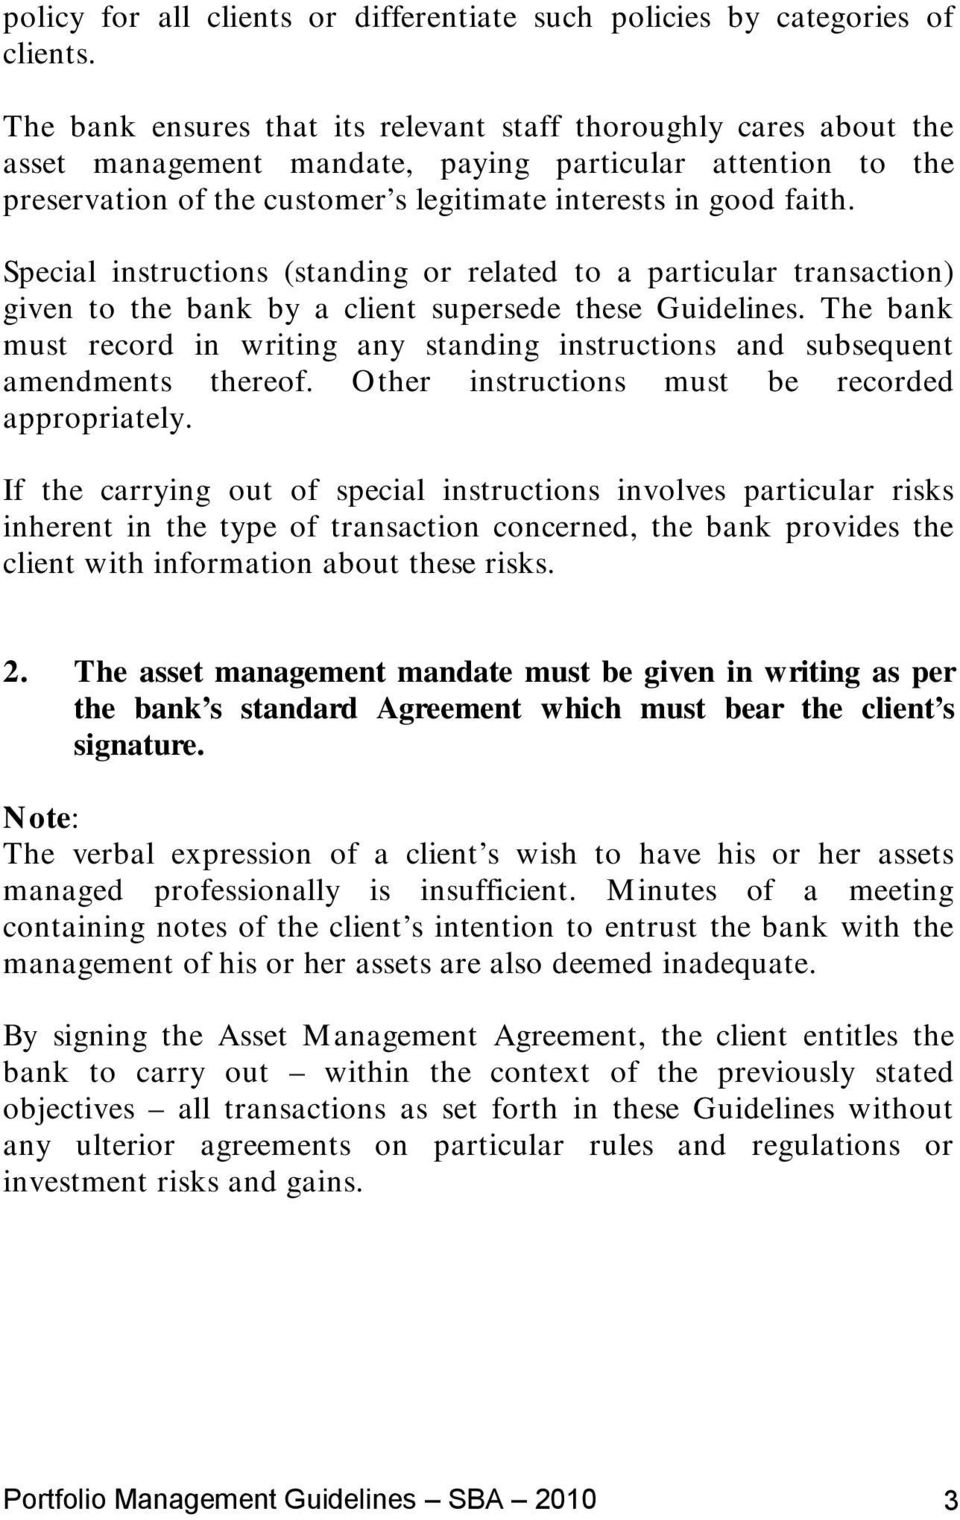 Special instructions (standing or related to a particular transaction) given to the bank by a client supersede these Guidelines.